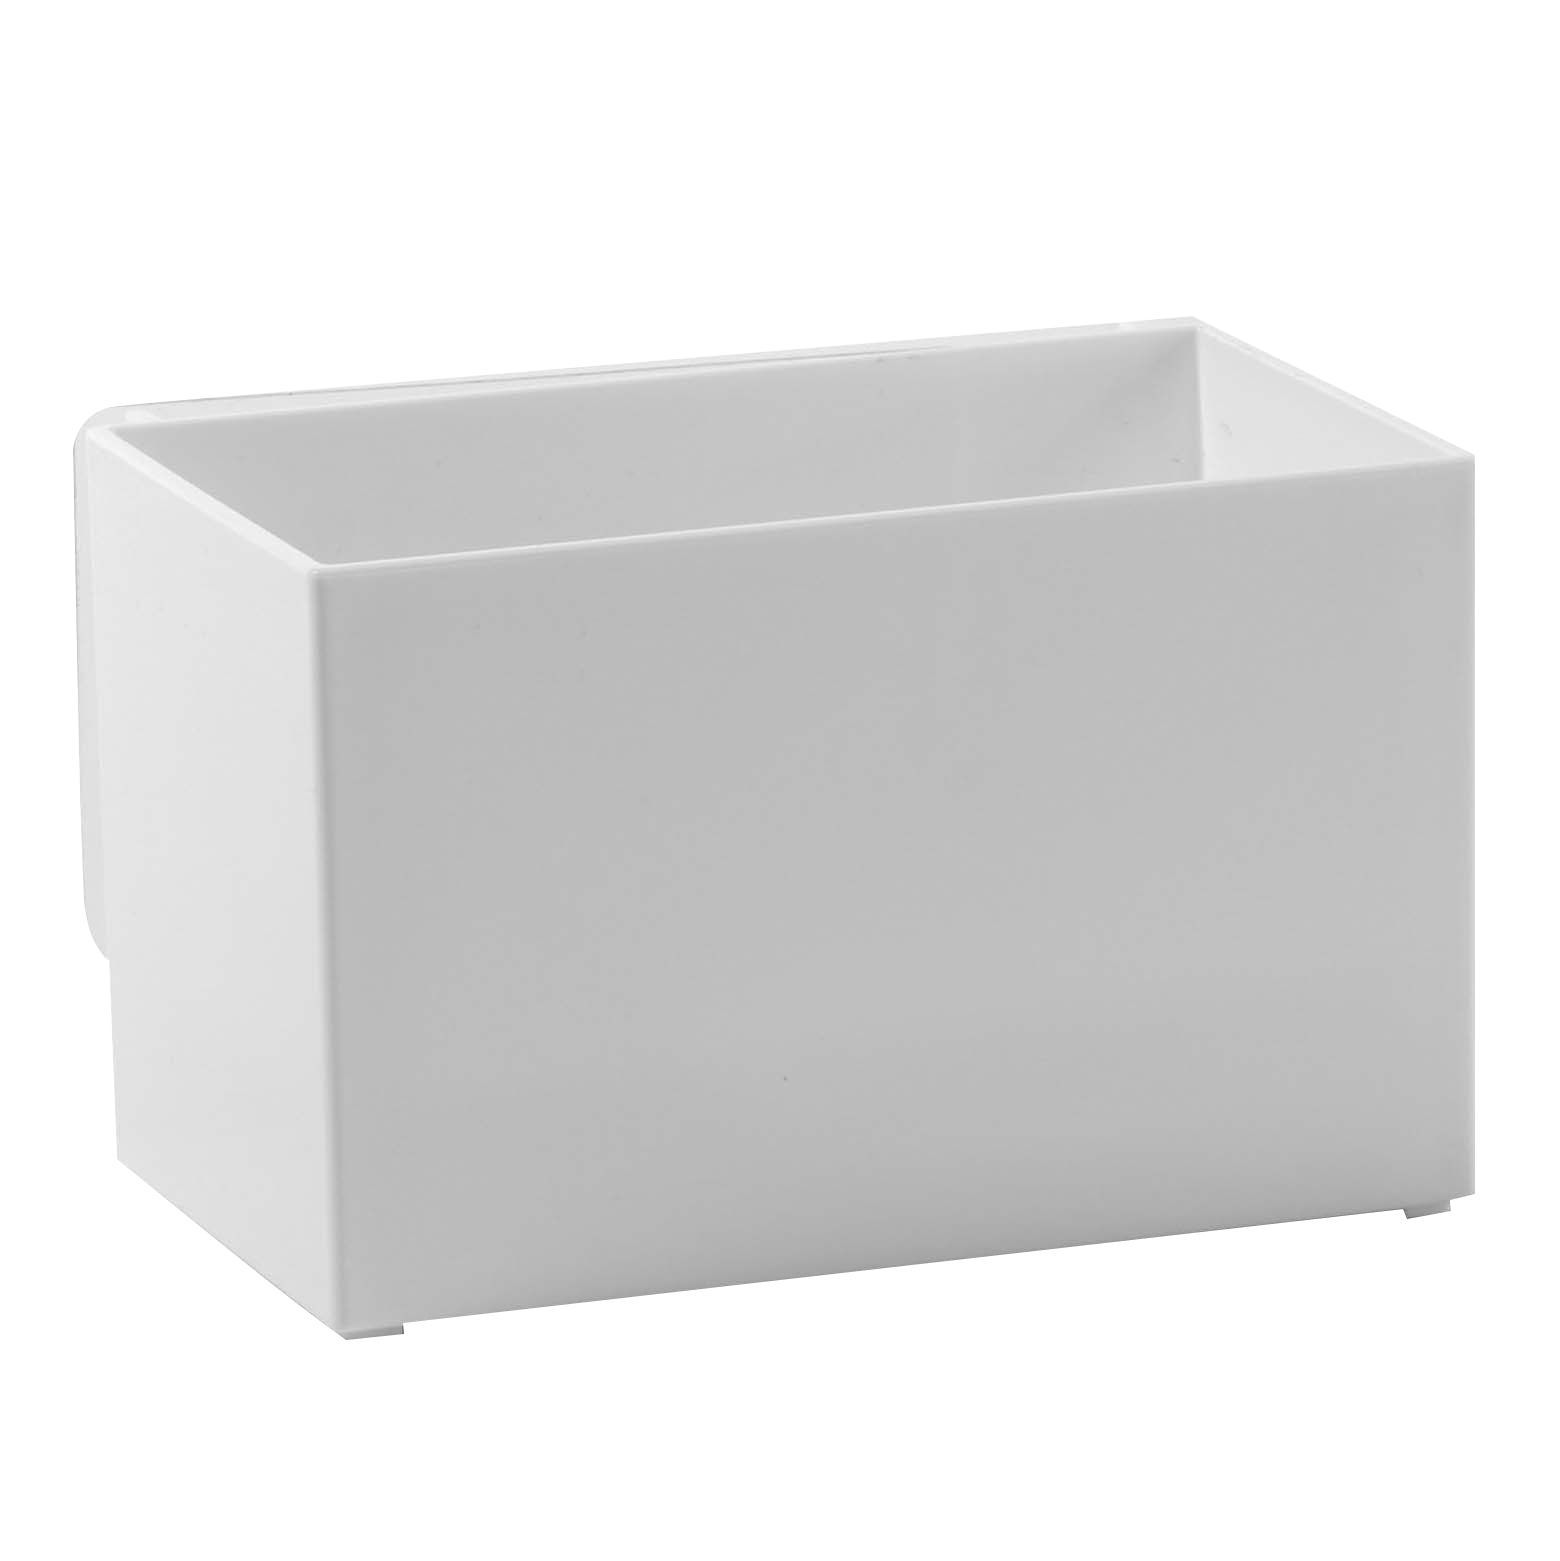 End of Summer savings are here! Shop Better Homes & Gardens and find amazing deals on white plastic storage boxes from several brands all in one place.